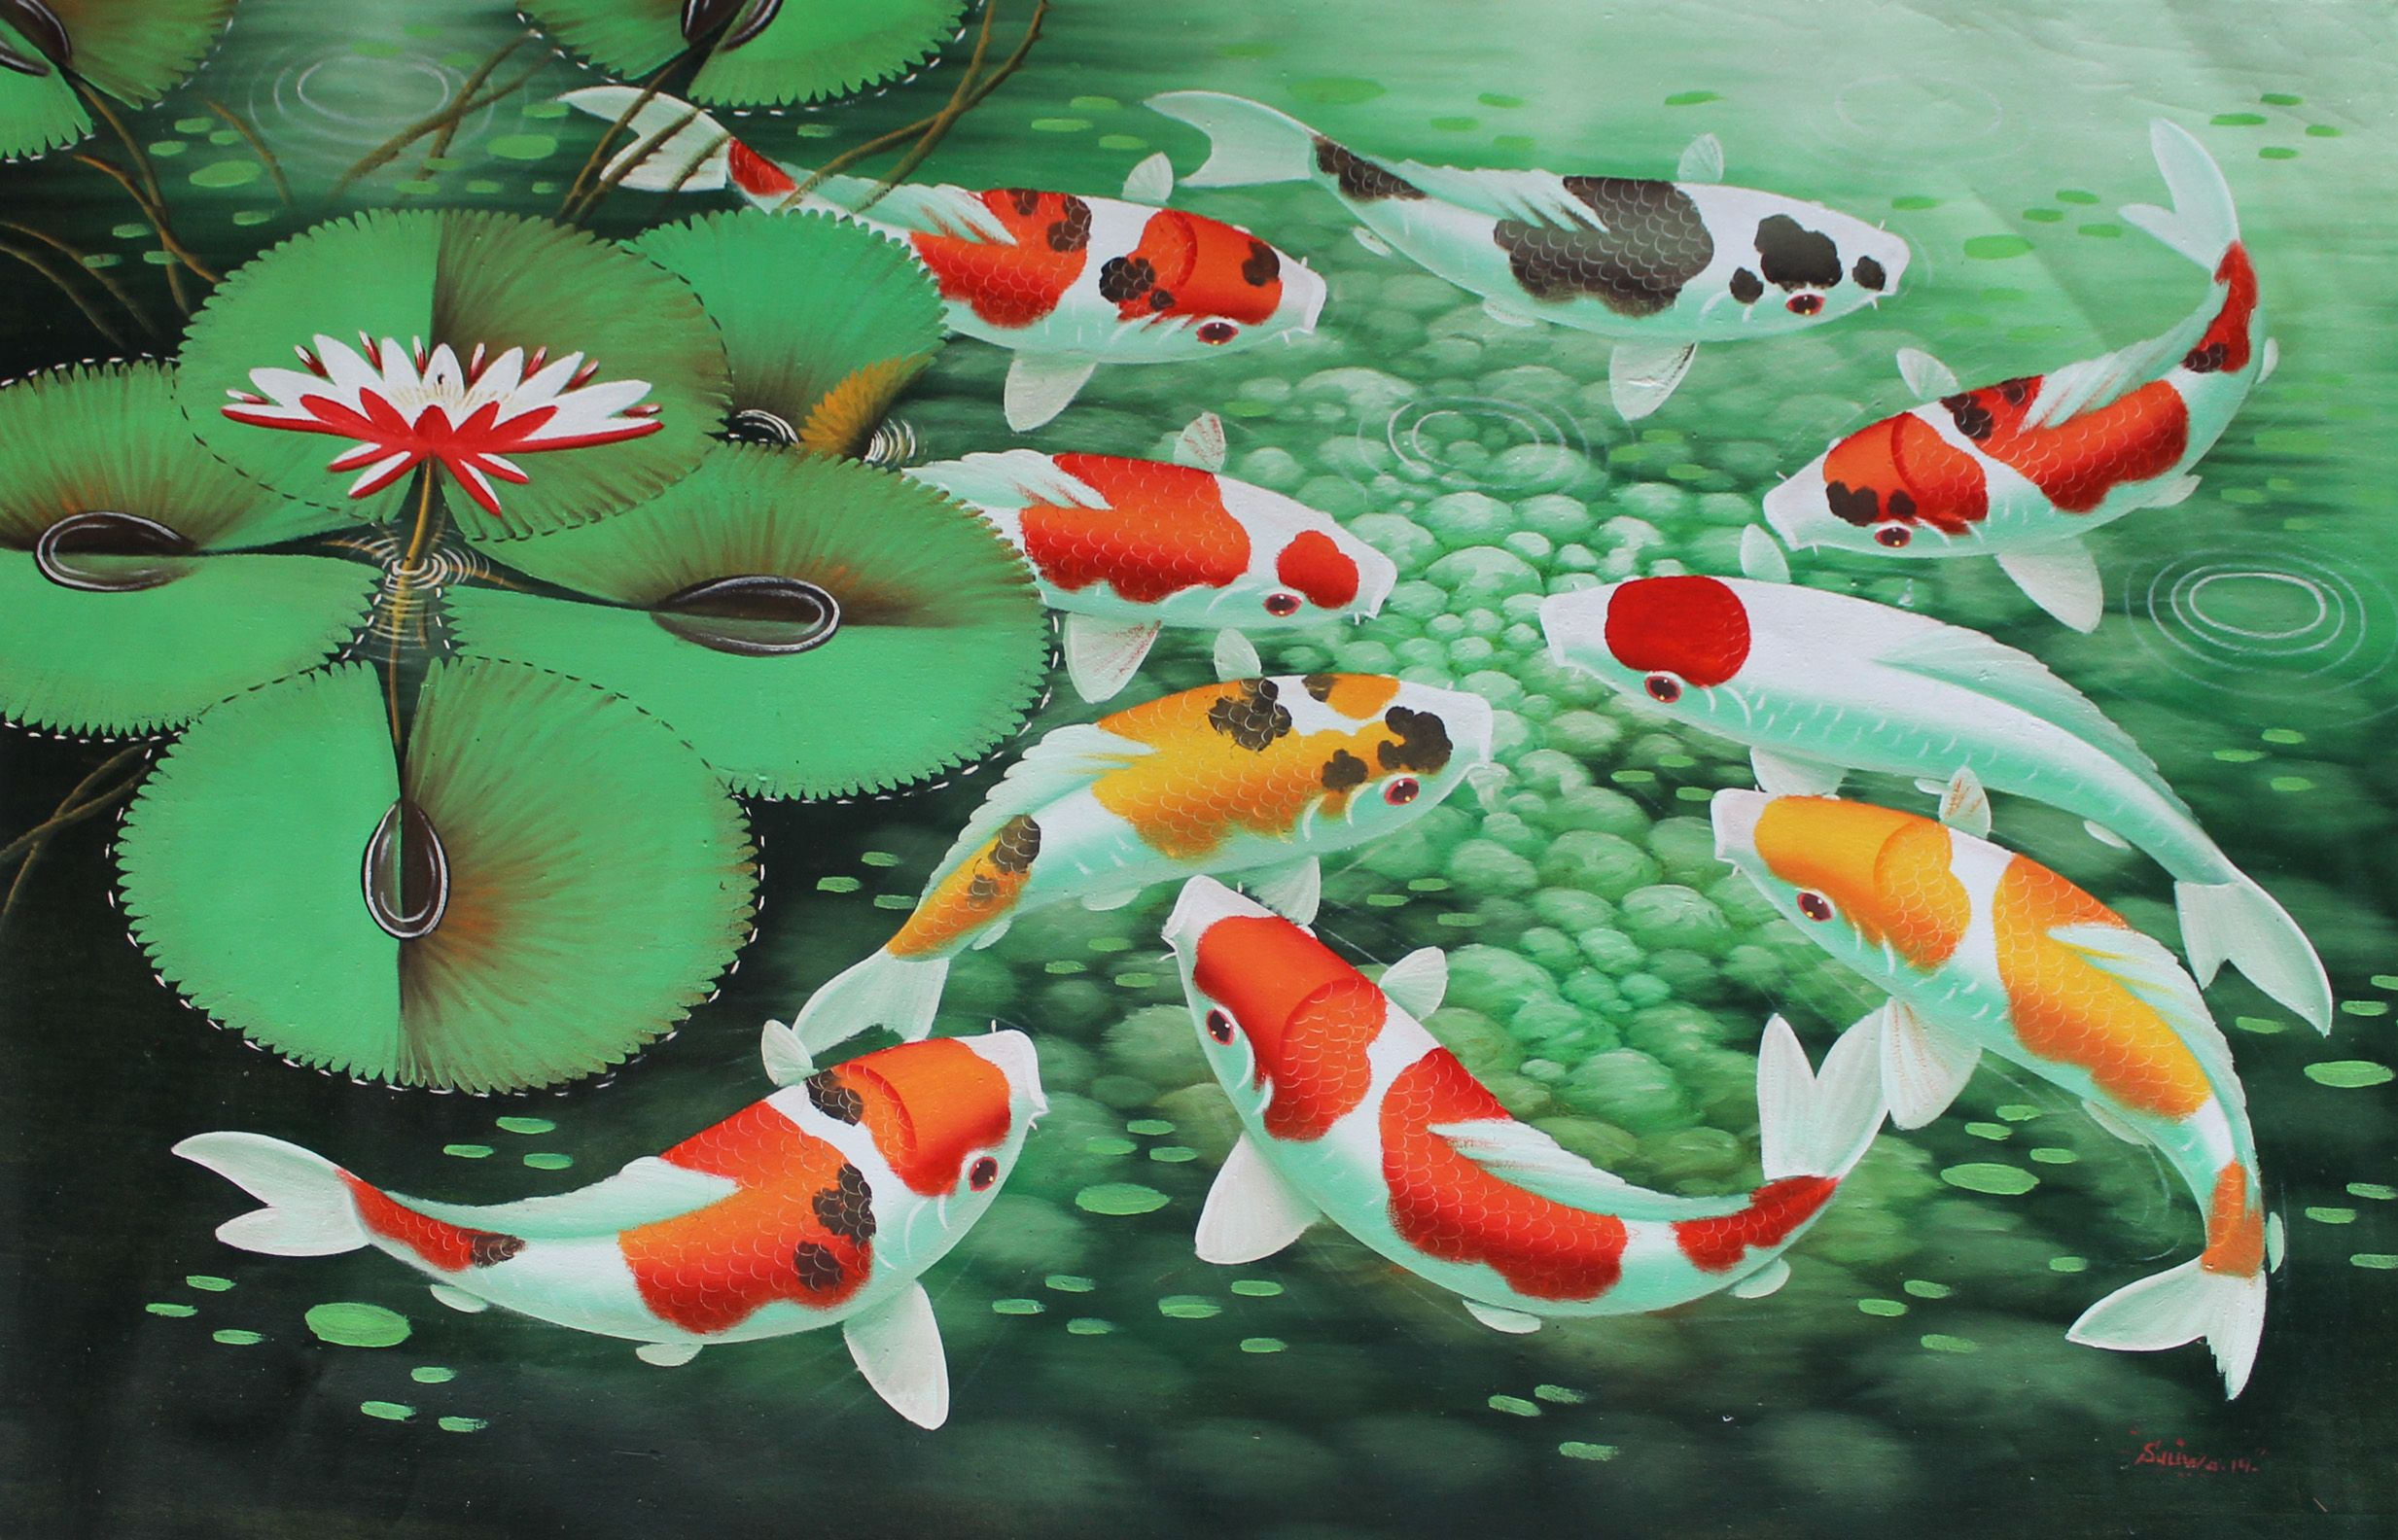 Koi fish painting wallpaper love of koi pinterest for Koi fish images